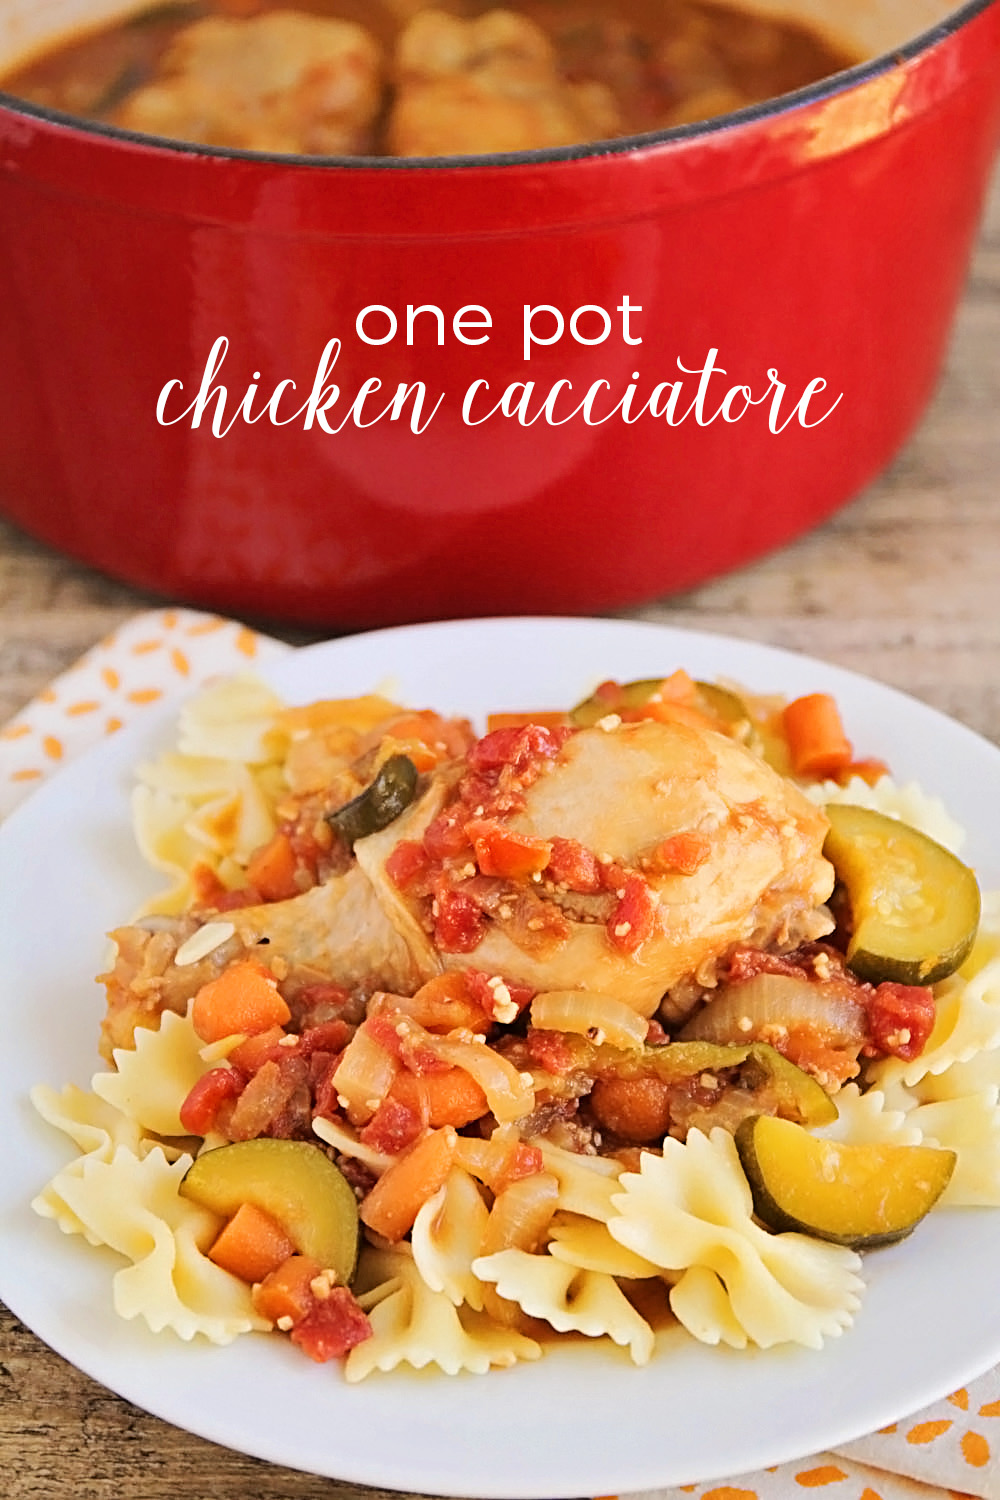 This one pot chicken cacciatore is so savory and delicious! Full of summer vegetables and tender, fall-off-the-bone chicken, it's an easy dinner the whole family will love!